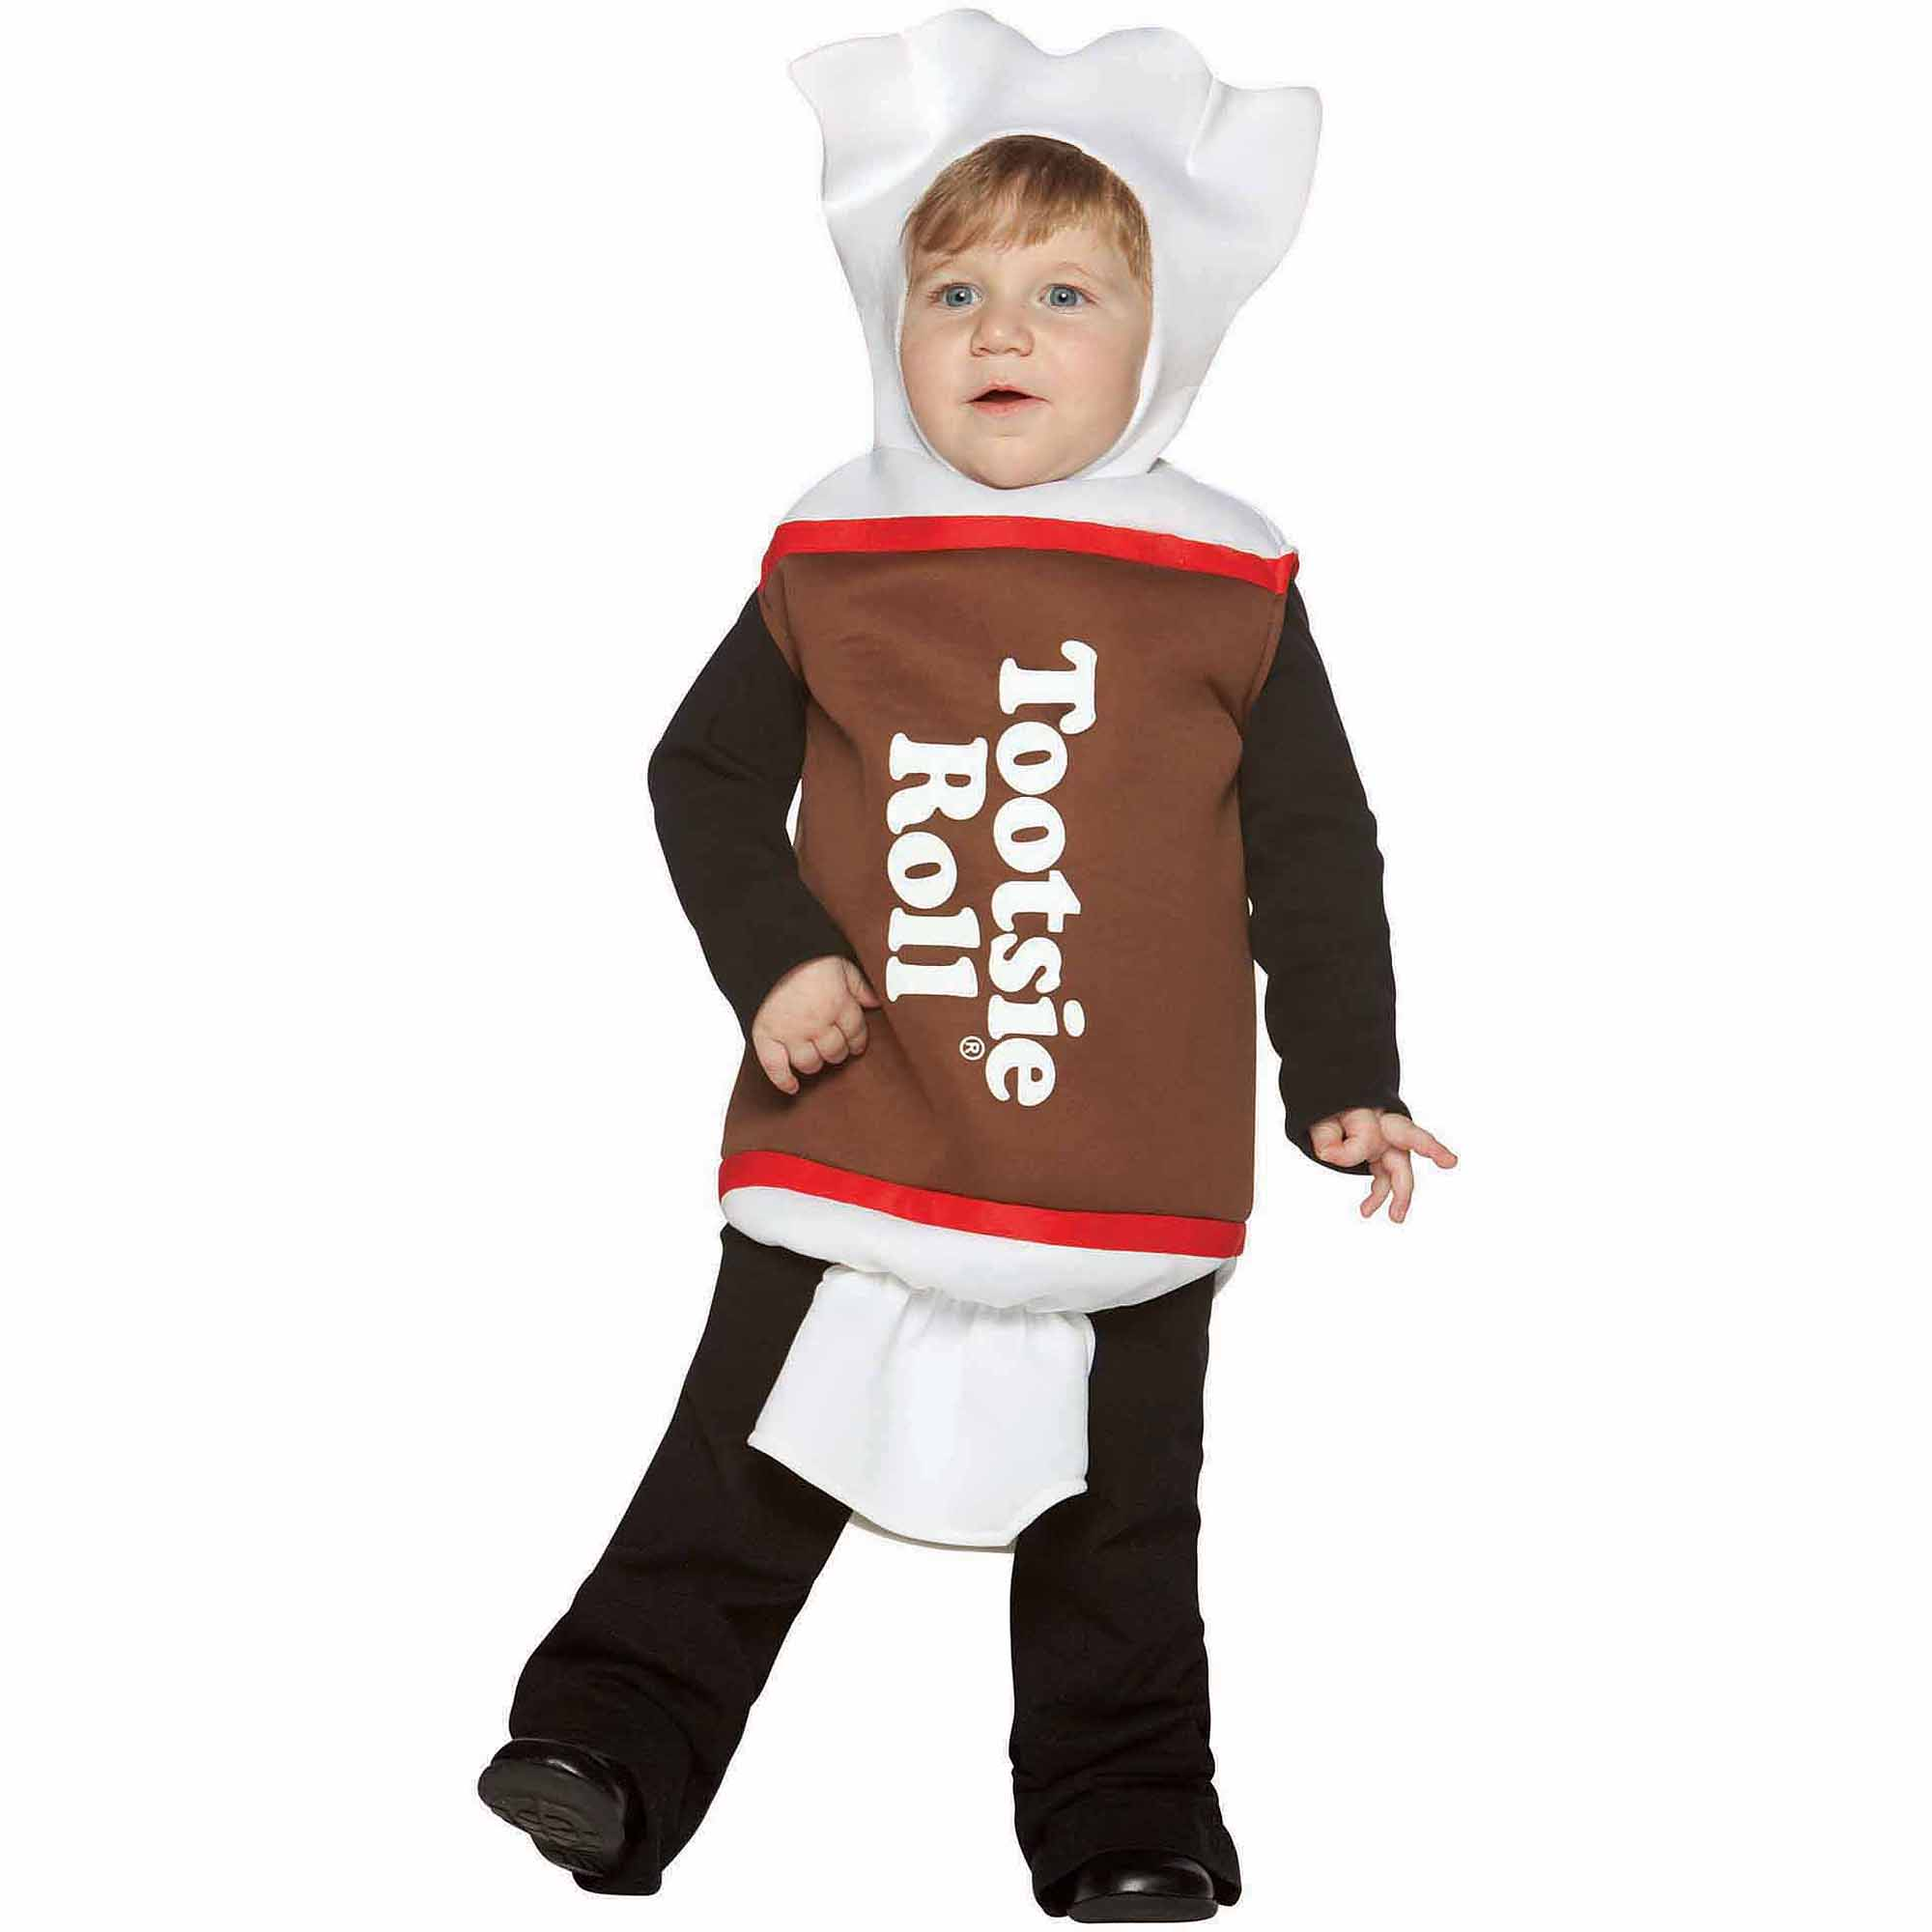 Tootsie Roll Toddler Halloween Costume